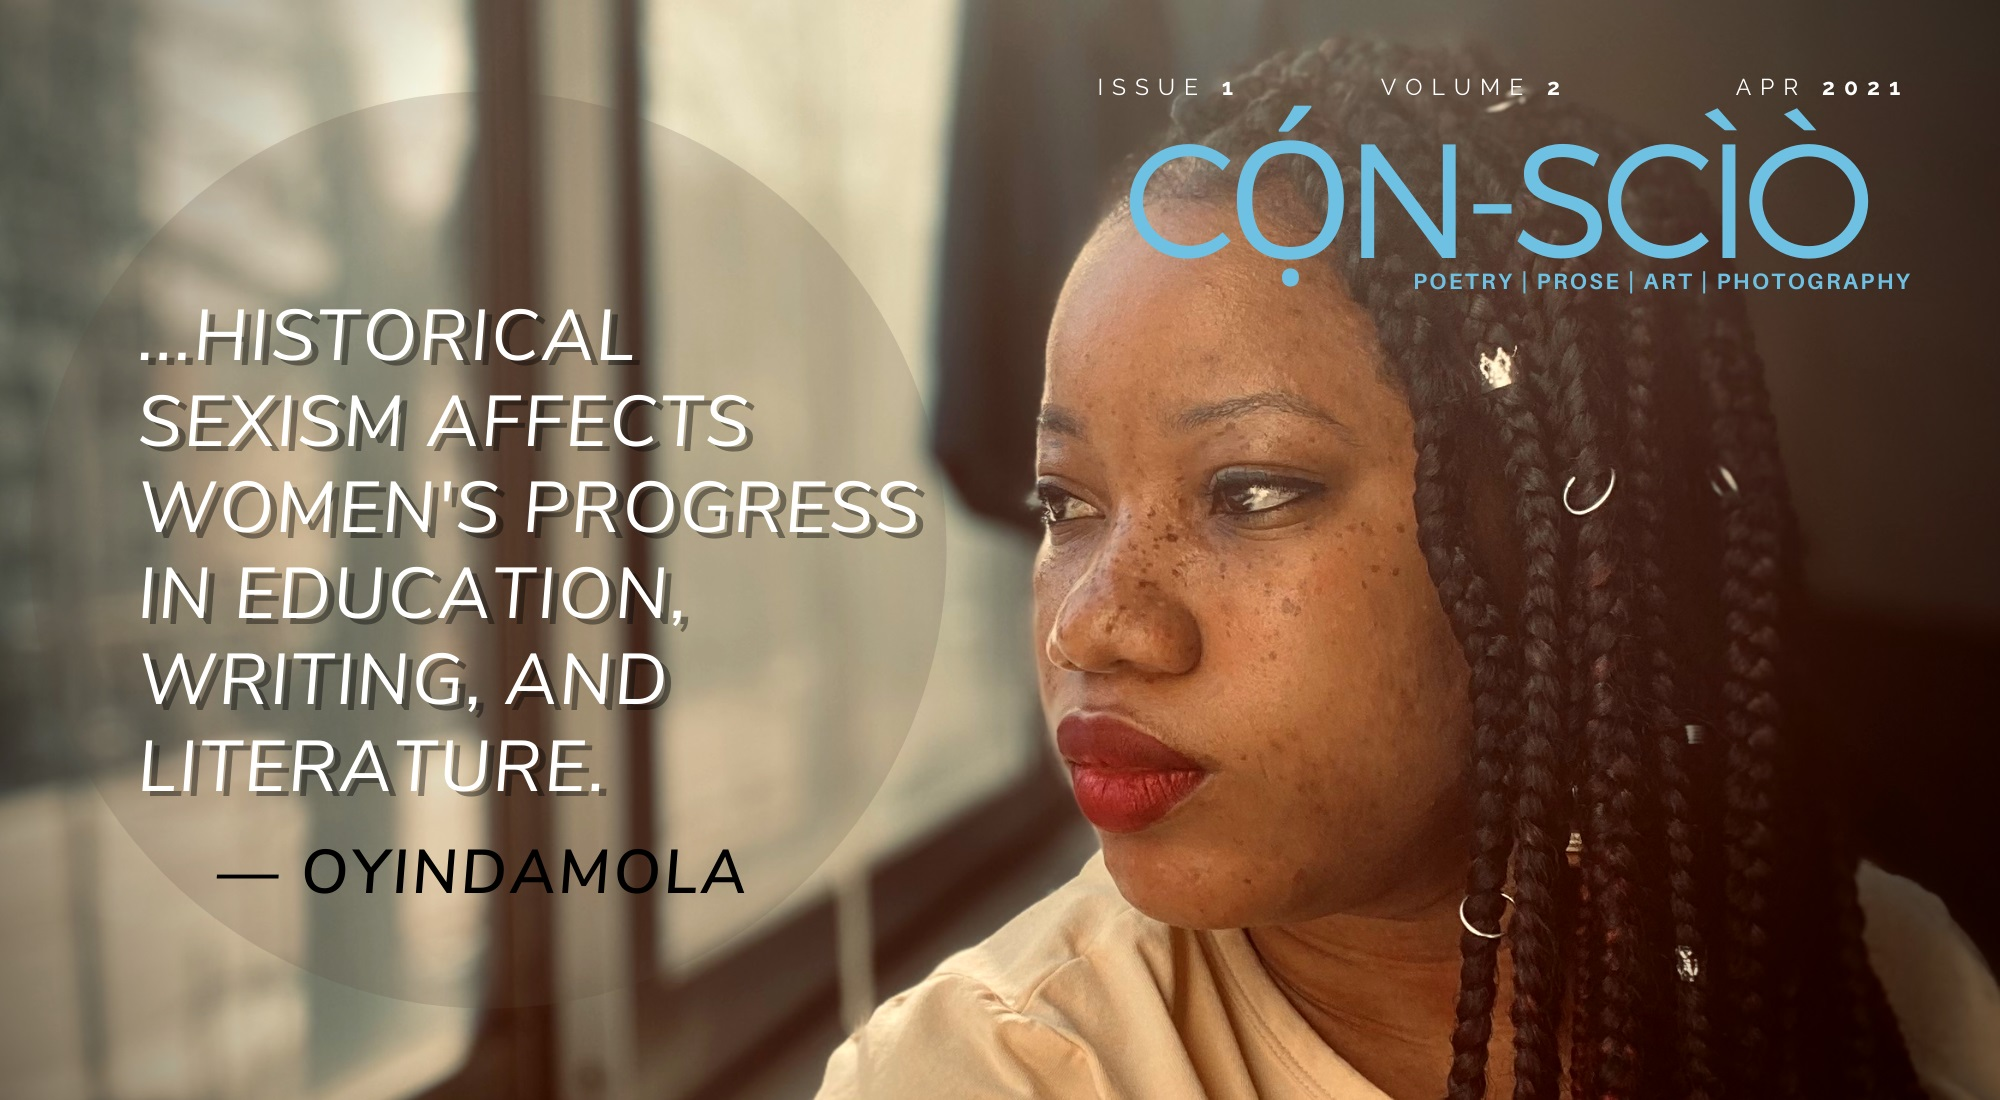 """""""HISTORICAL SEXISM AFFECTS WOMEN'S PROGRESS IN EDUCATION, WRITING, AND LITERATURE"""":  A CỌ́N-SCÌÒ MAGAZINE INTERVIEW WITH OYINDAMOLA SHOOLA"""